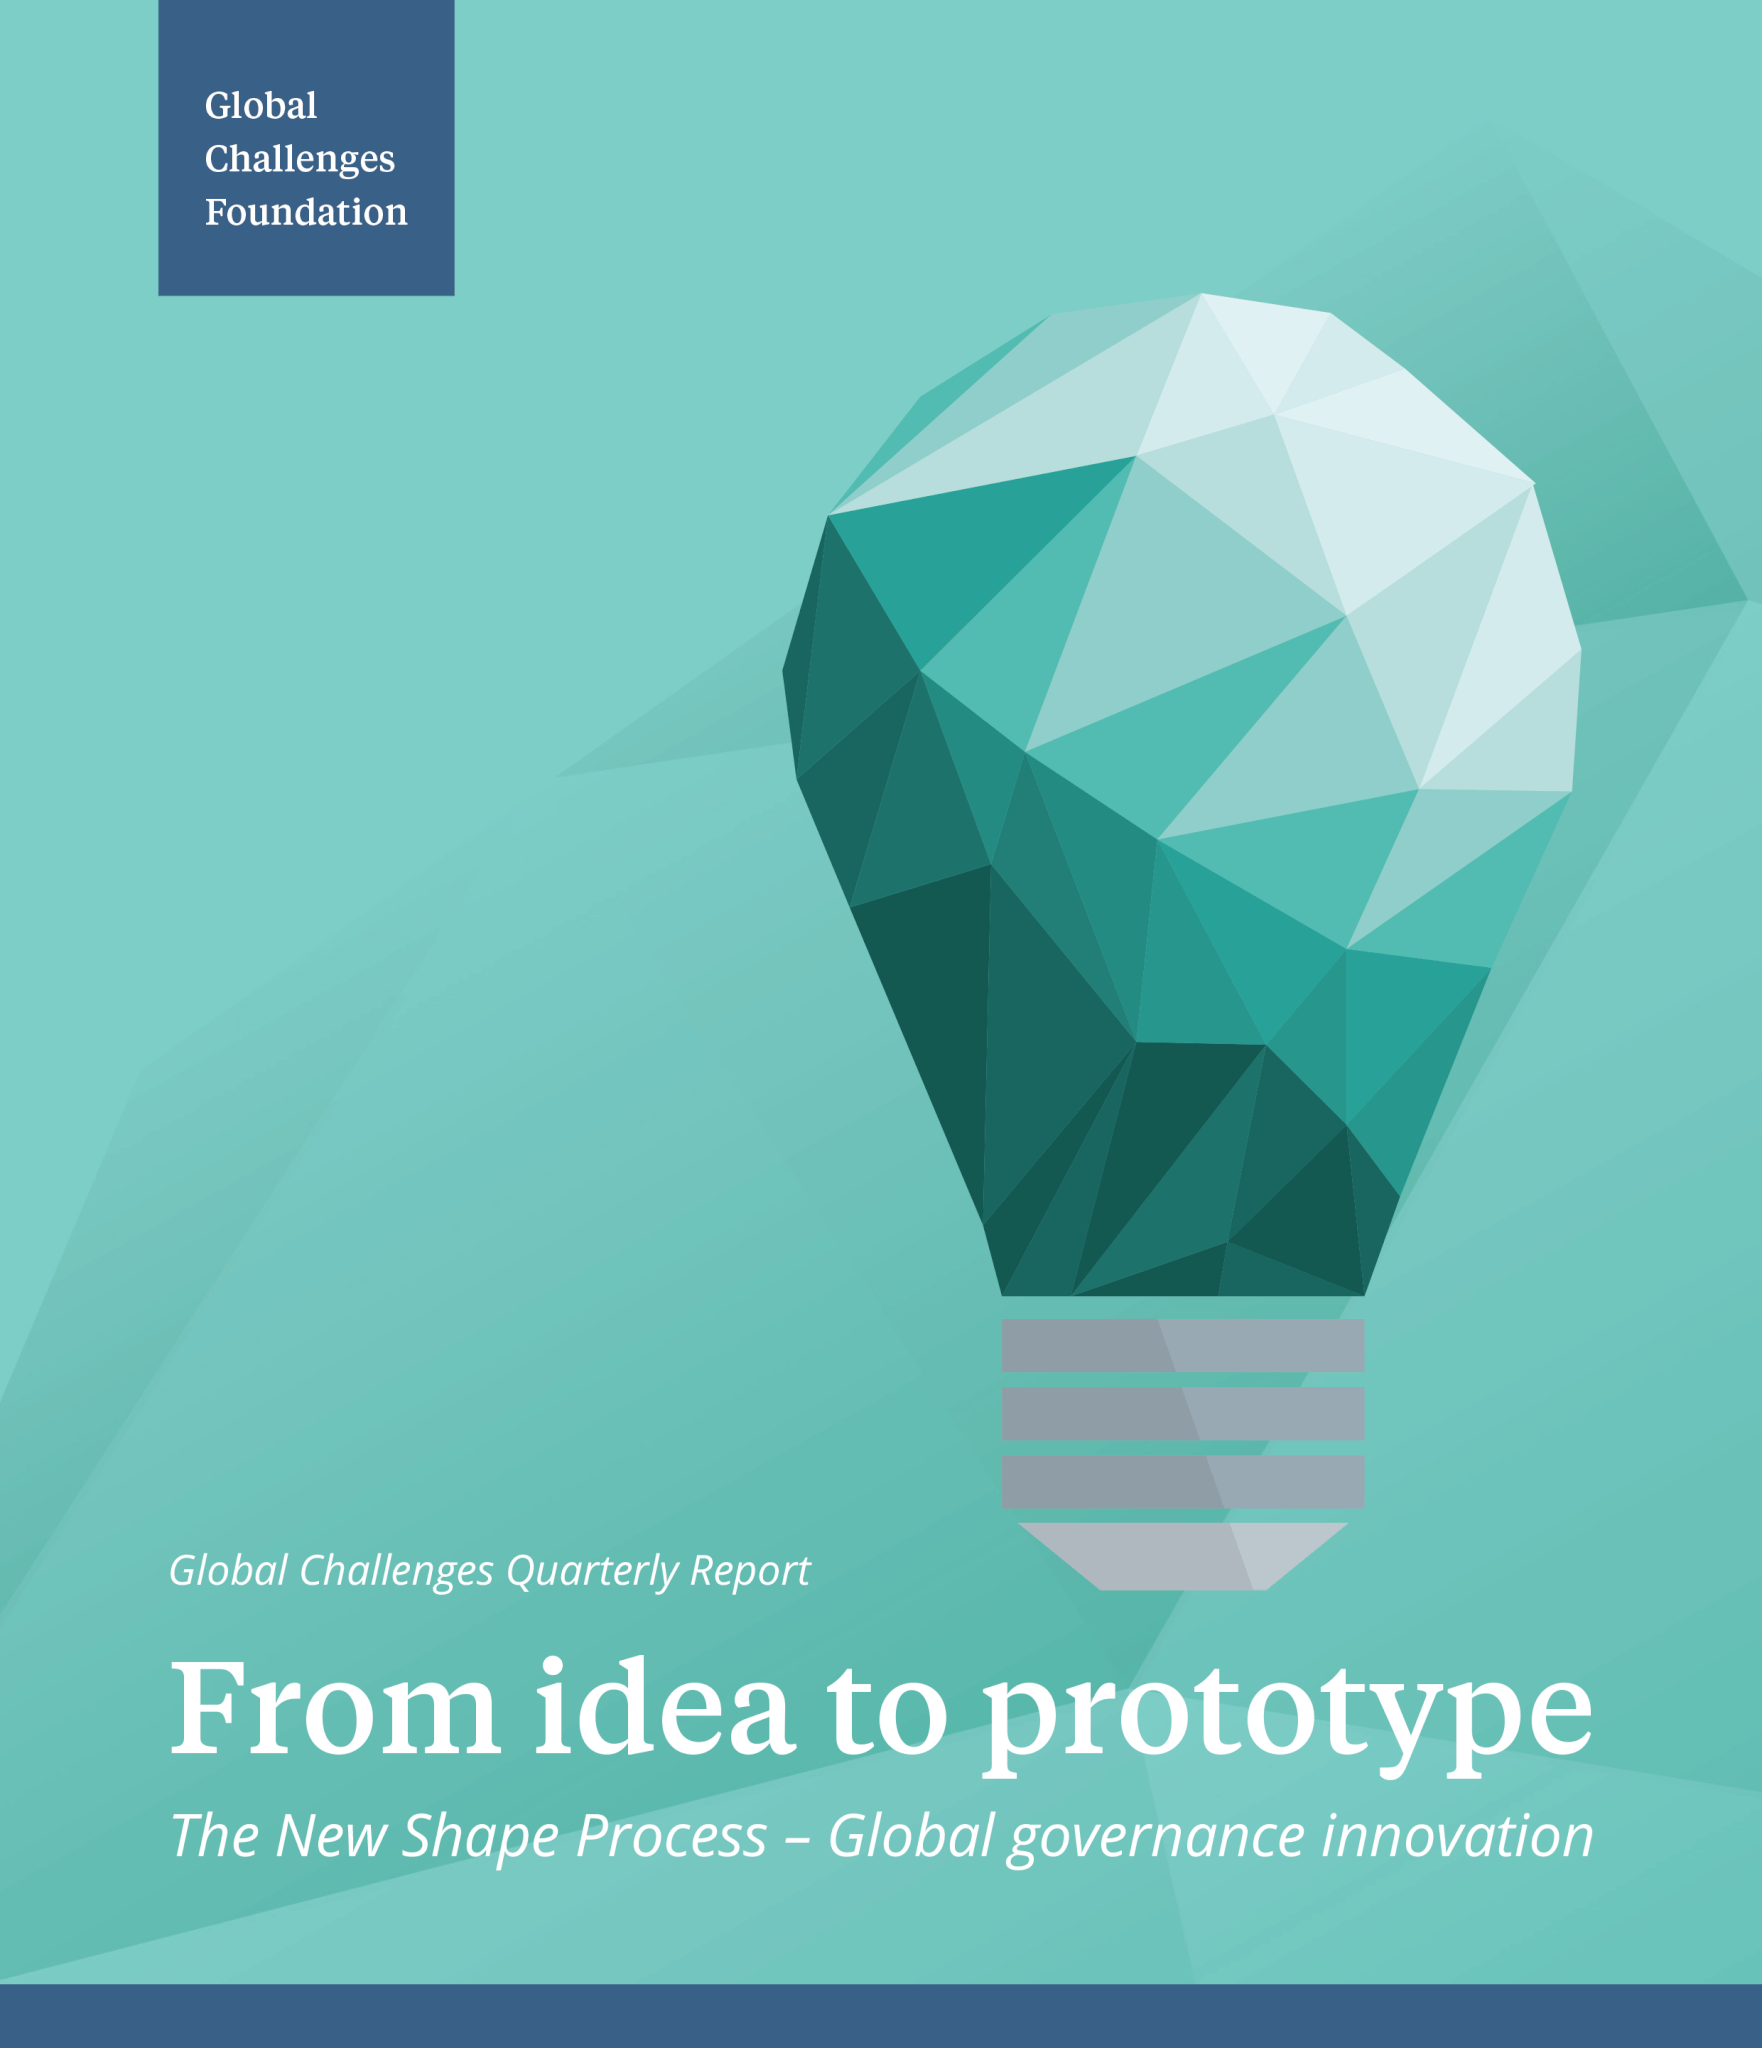 The New Shape Process – Global governance innovation